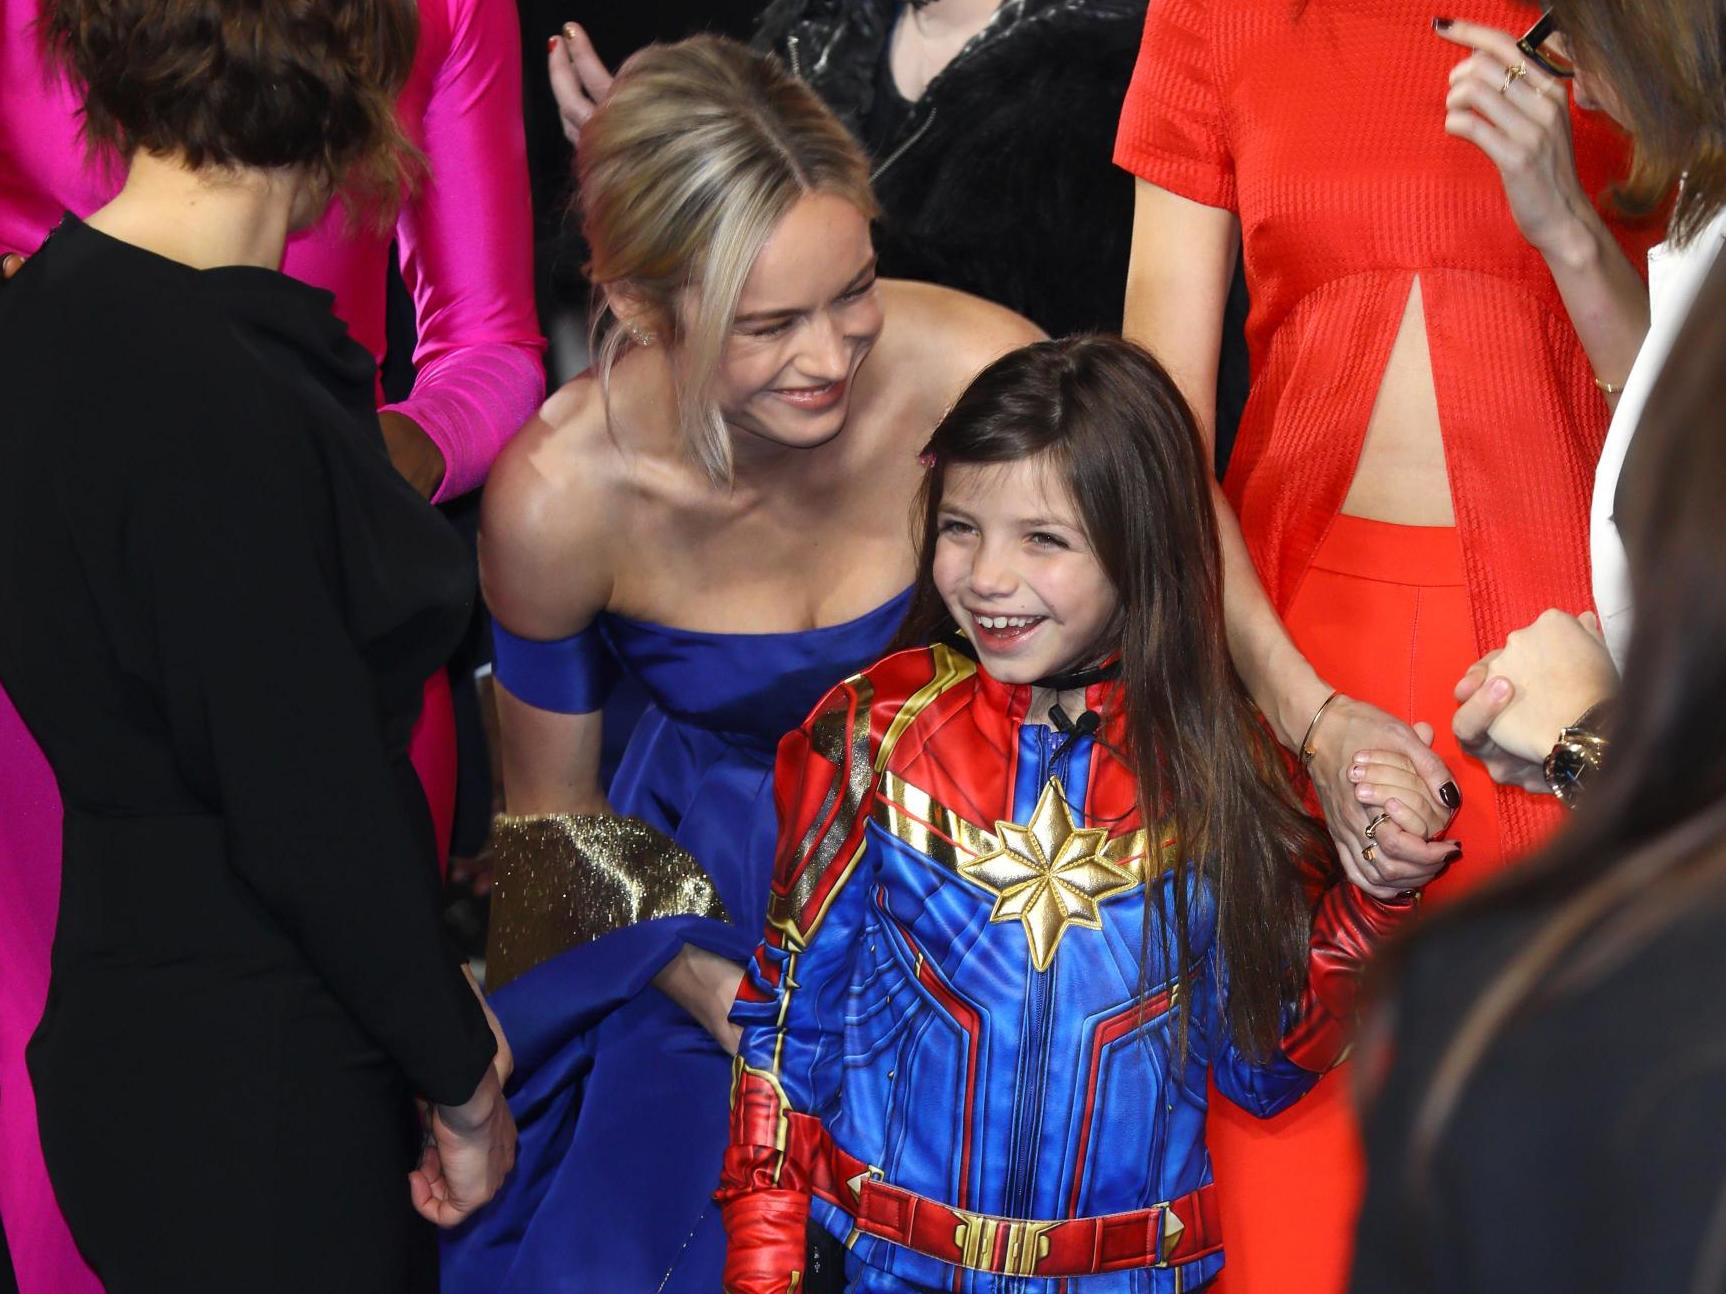 From Captain Marvel To Wonder Woman 10 Times Young Girls Dressed As Their Female Heroes The Independent The Independent The costume guide to all of captain marvel / carol danvers outfits, portrayed by brie larson, in captain marvel. from captain marvel to wonder woman 10